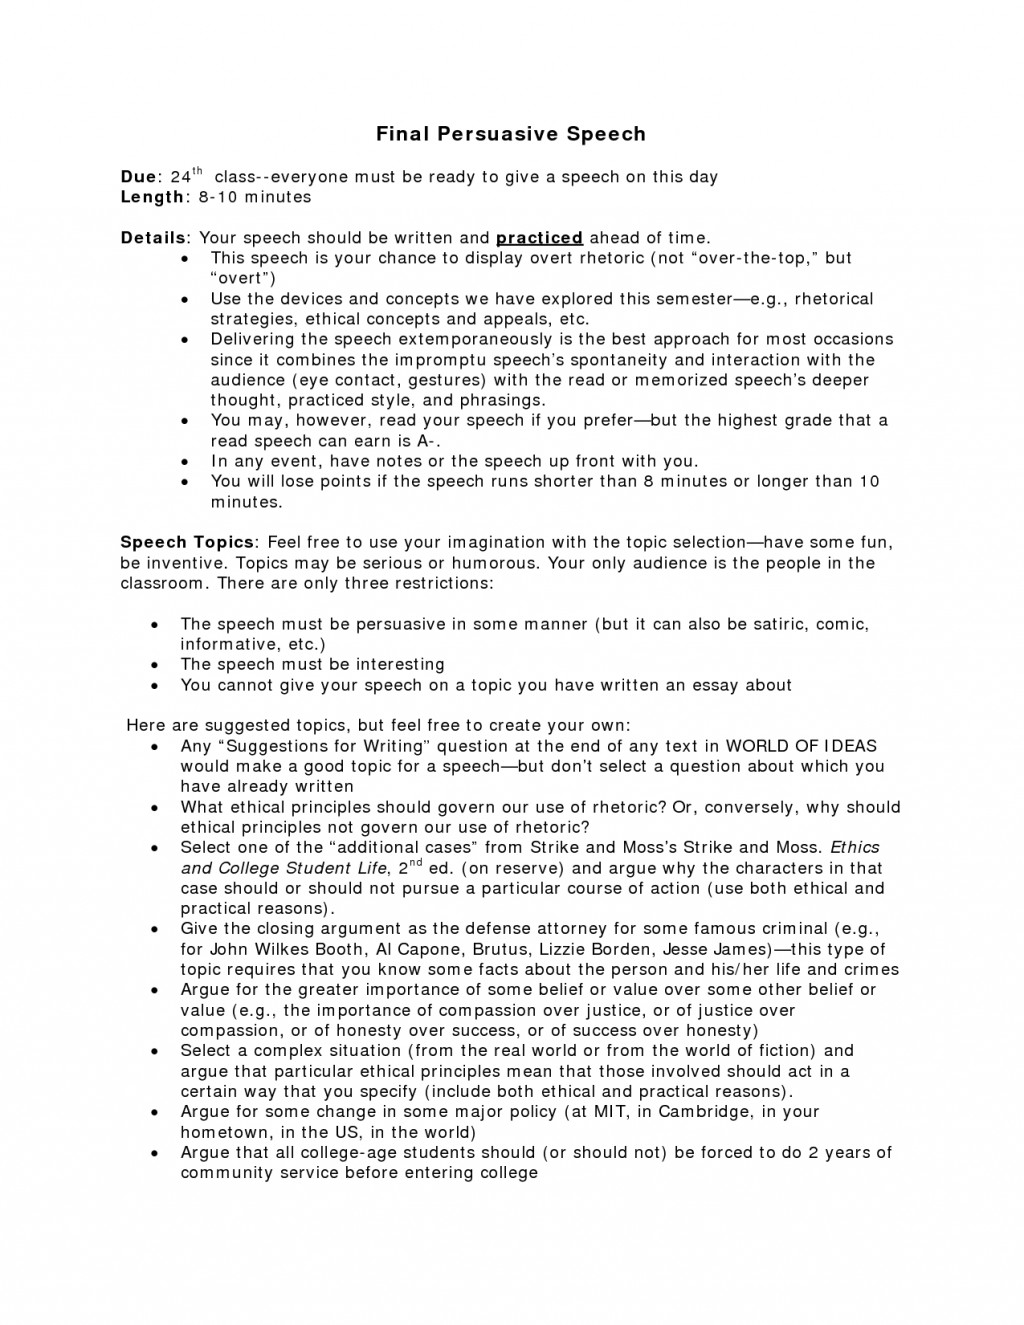 007 Persuasivessay Topics For College Writings Andssays Middle School To Write About Narrativexample Re Science Argumentative Good Paper Informative Listxpository Amazing Persuasive Essay 2018 Uk High Large